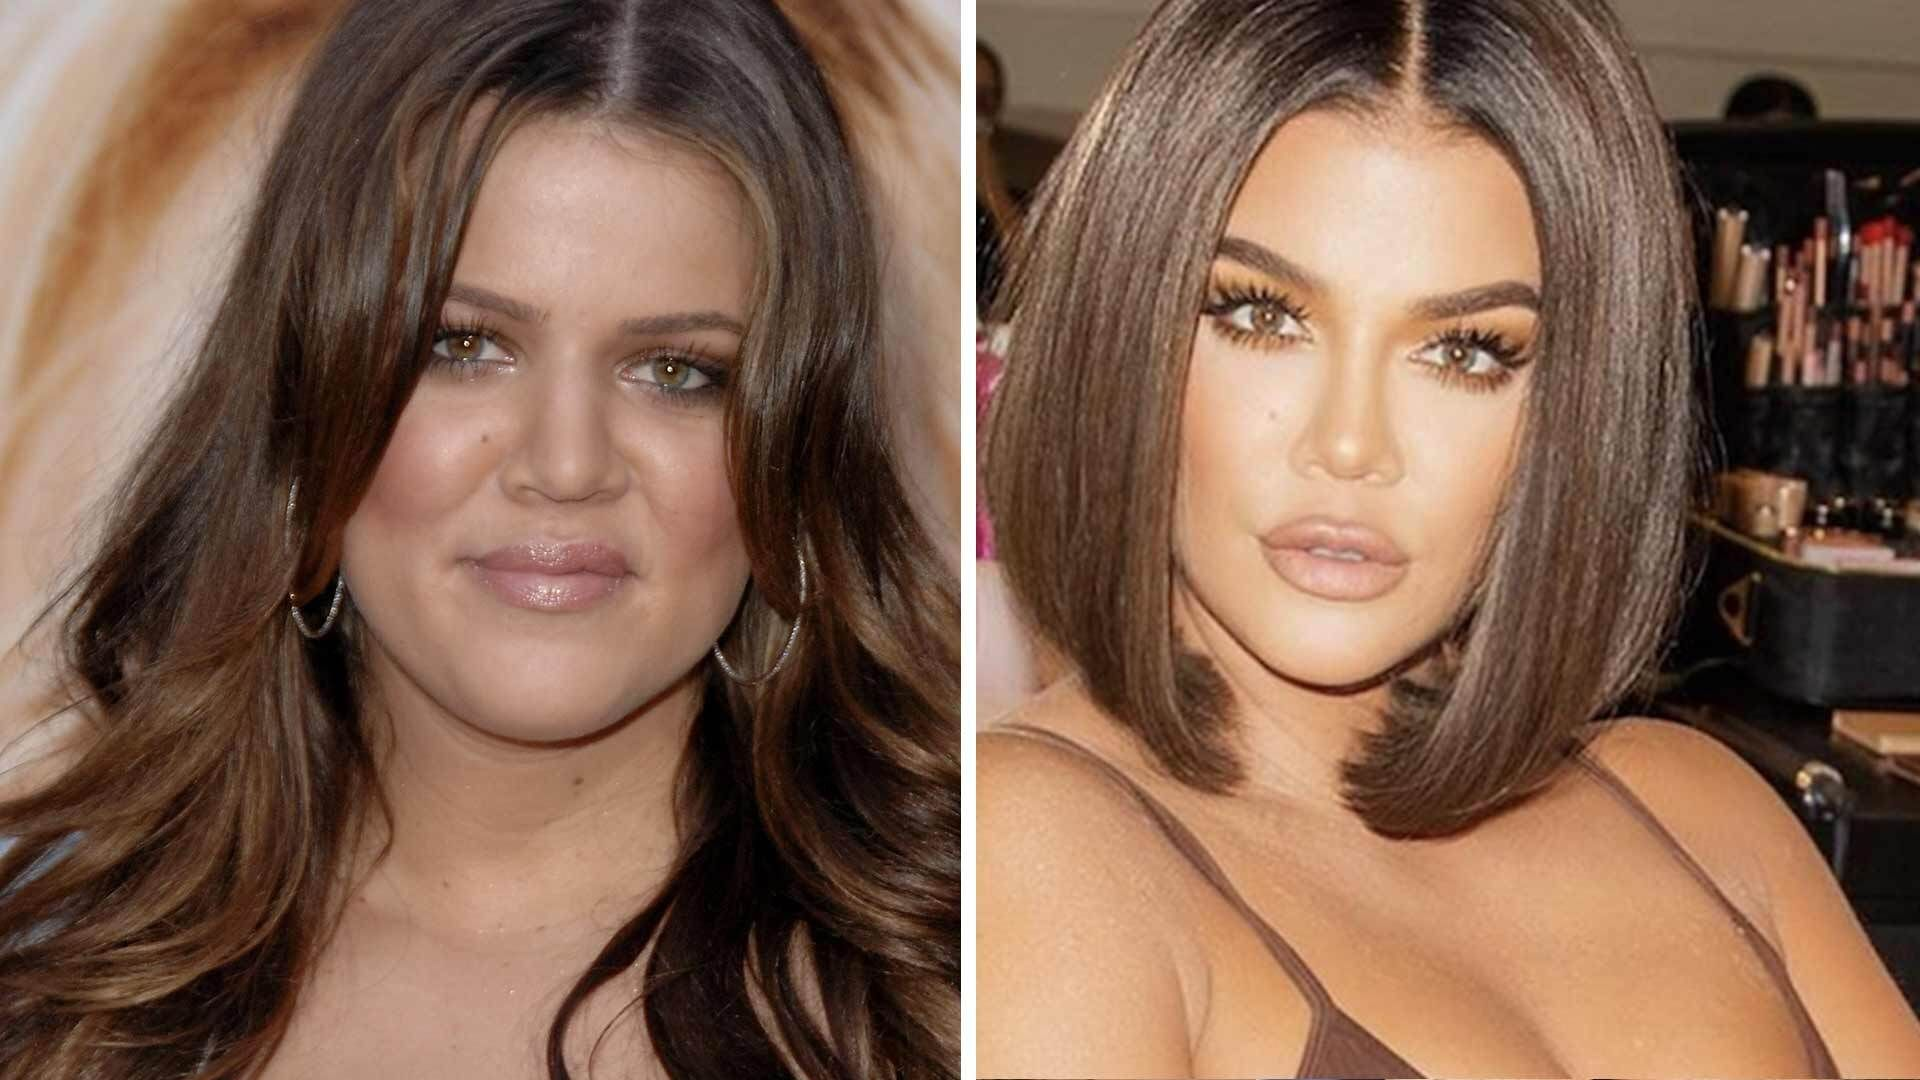 KUWTK: Khloe Kardashian Jokes She Met Simon Huck 'Five Faces Ago' In Response To The Criticism She Looks Unrecognizable In Every Post!